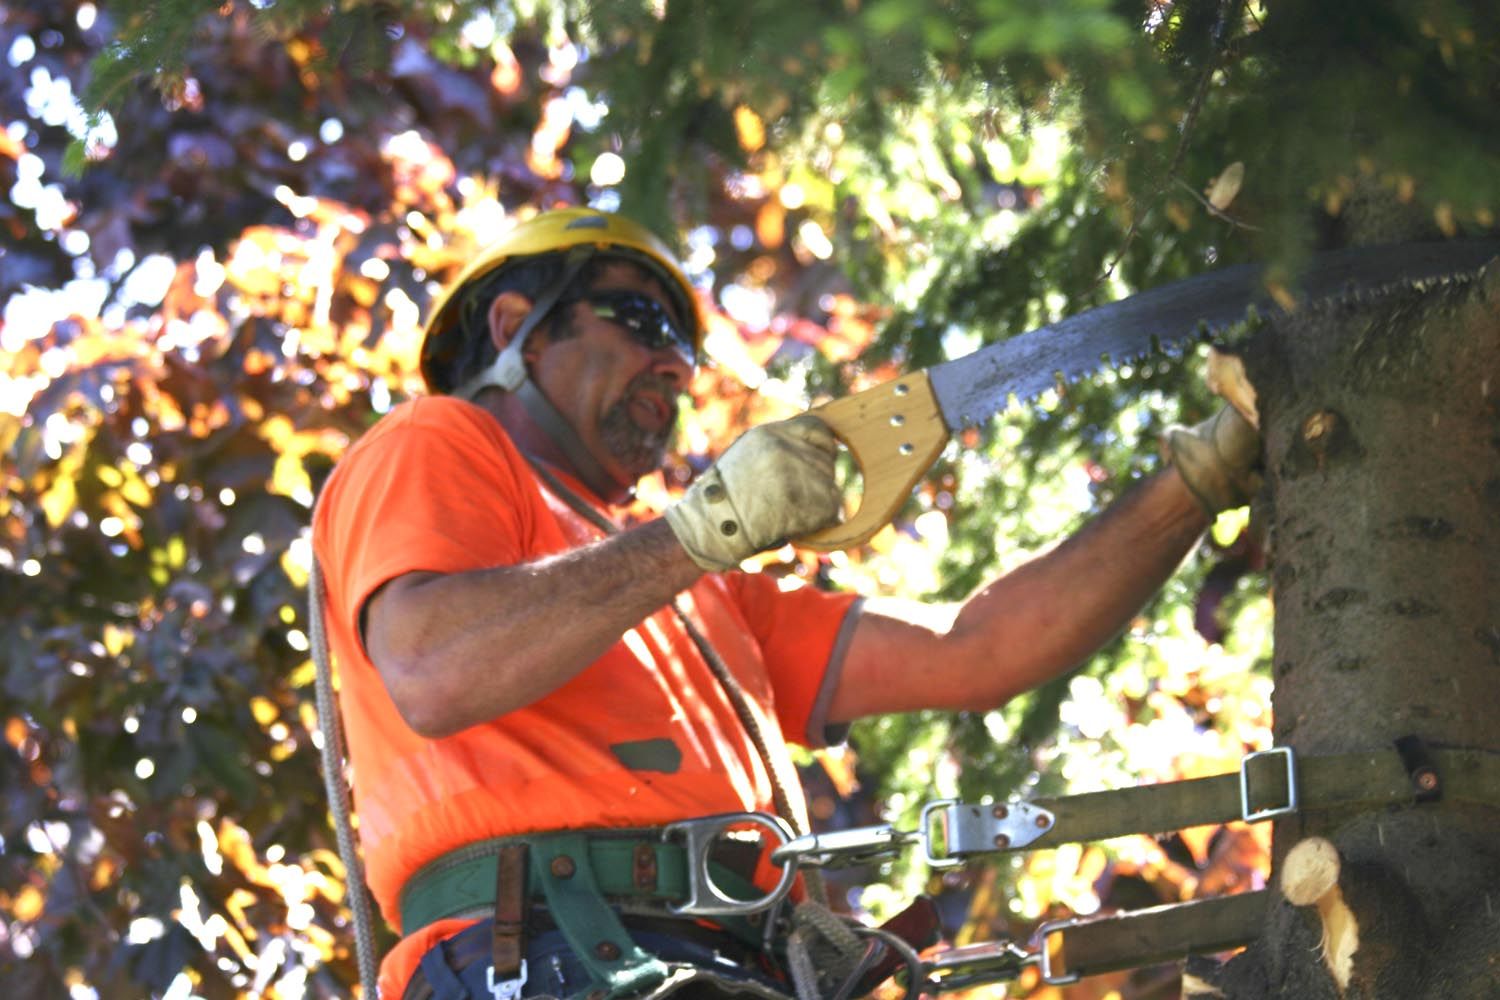 Tree Cutting Accidents | Common Tree Trimming Injuries, Techniques